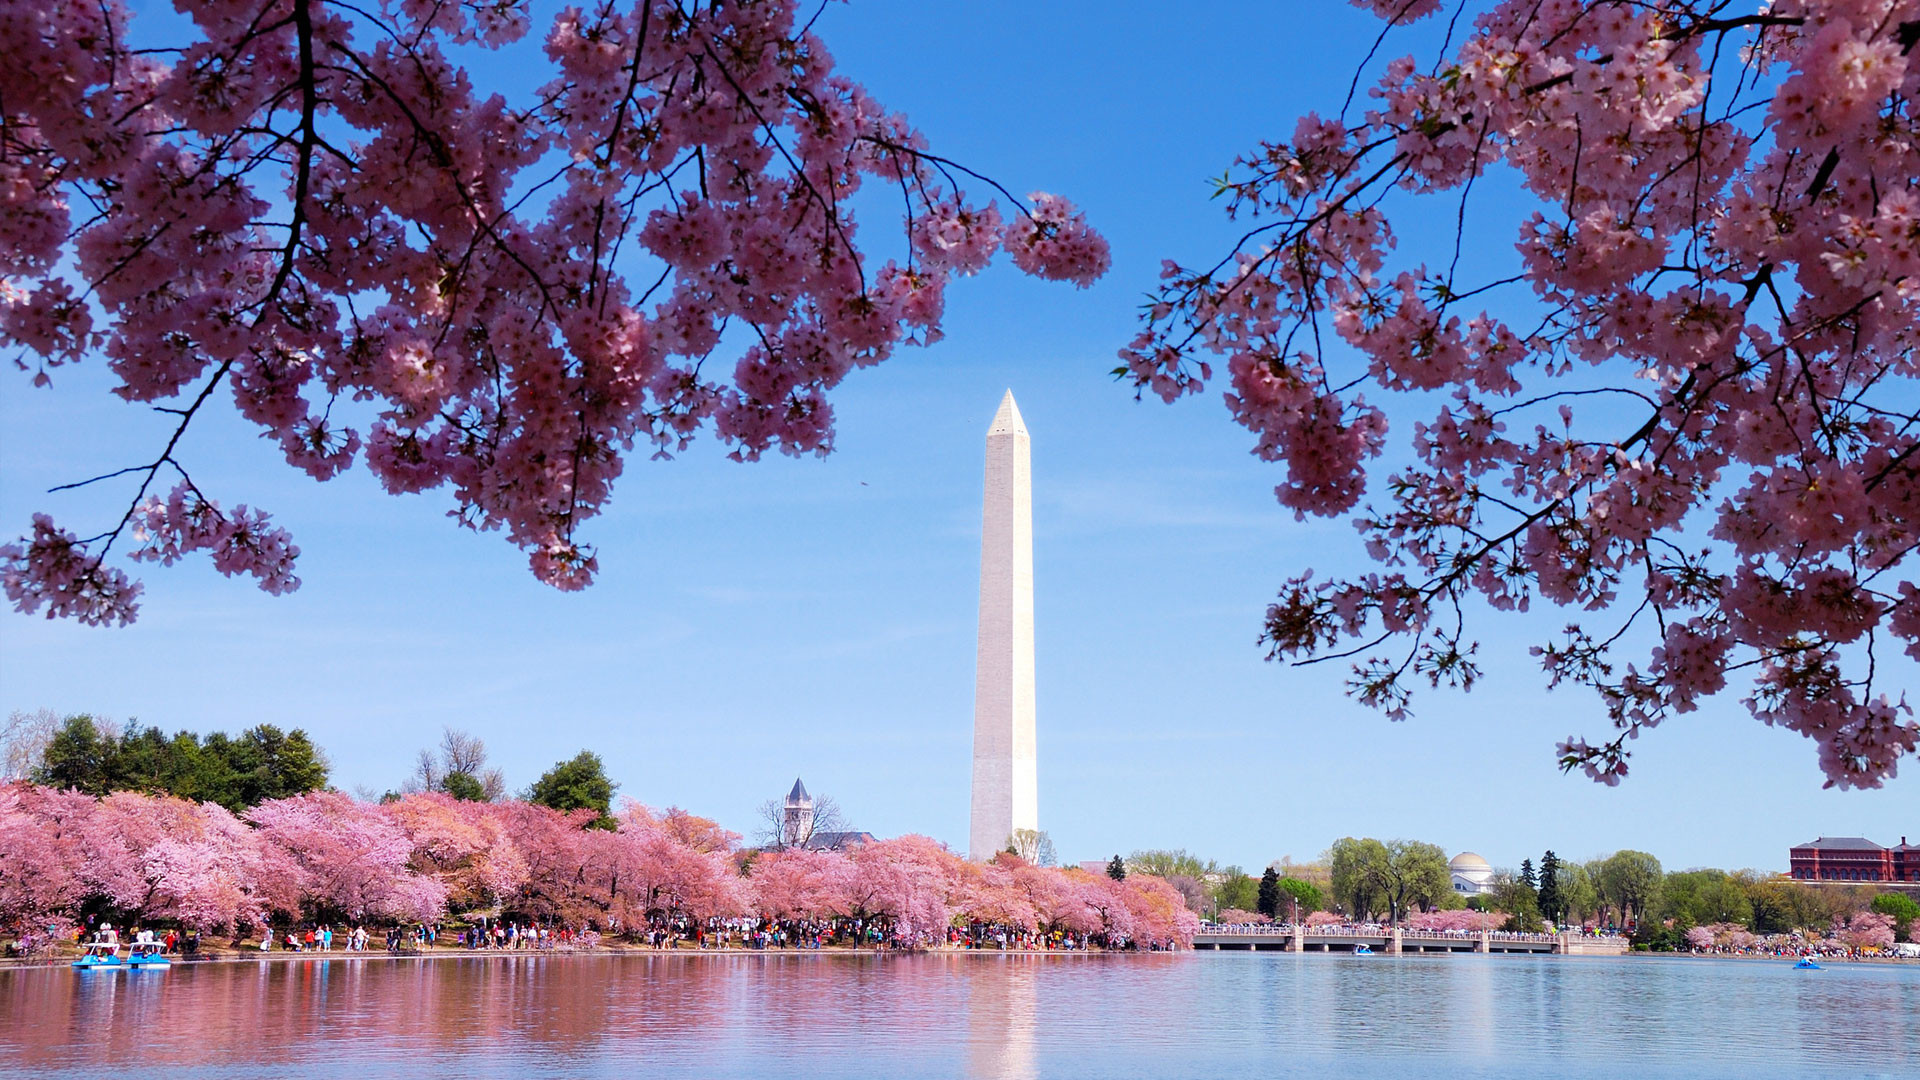 Best Places To Have a Date in Washington, D.C.